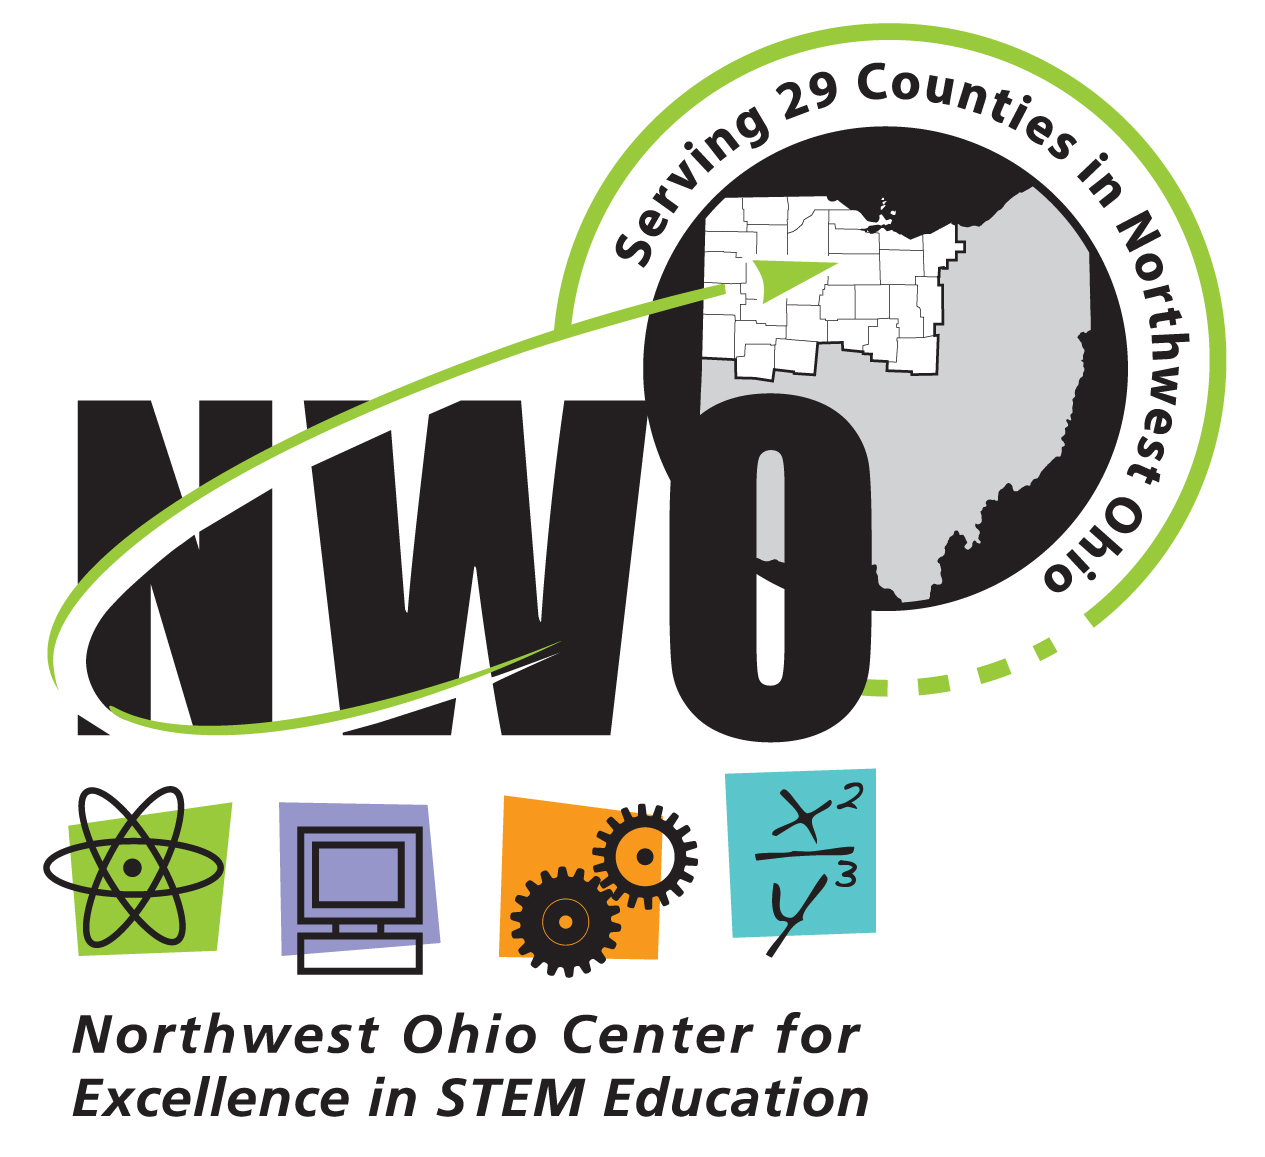 What Is A Stem School Ohio: Northwest Ohio Center For Excellence In STEM Education